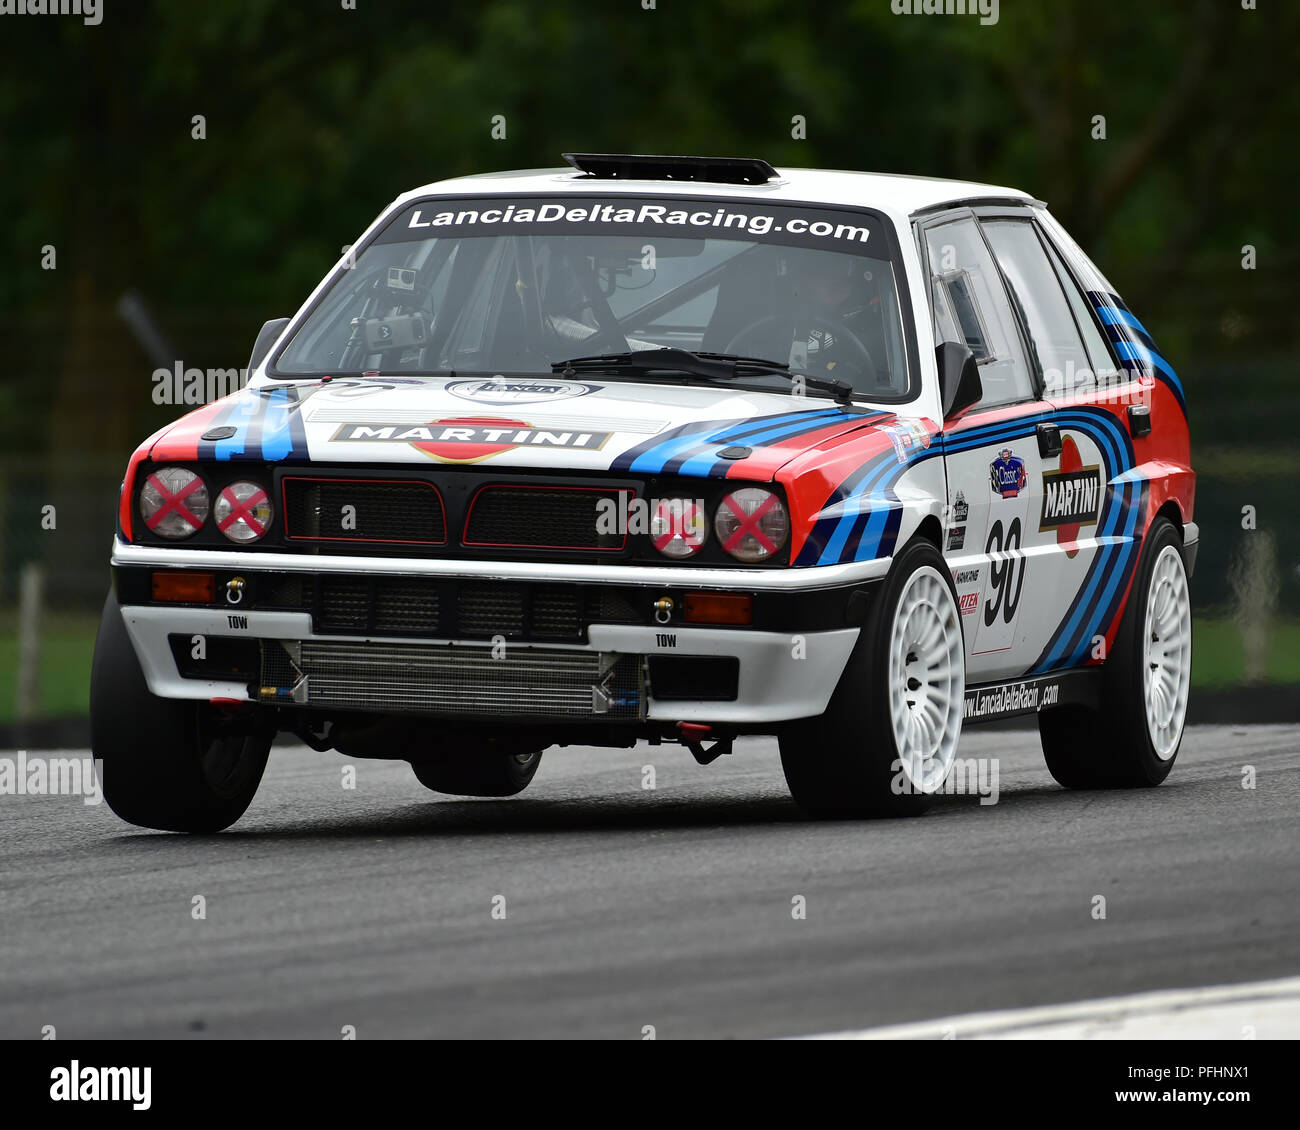 Richard Thurbin, Lancia Delta HF Integrale 16v, Italiano vs Inglese Allcomers, Festival Italia, Brands Hatch, Fawkham, Kent, England, Sunday 19th Augu - Stock Image